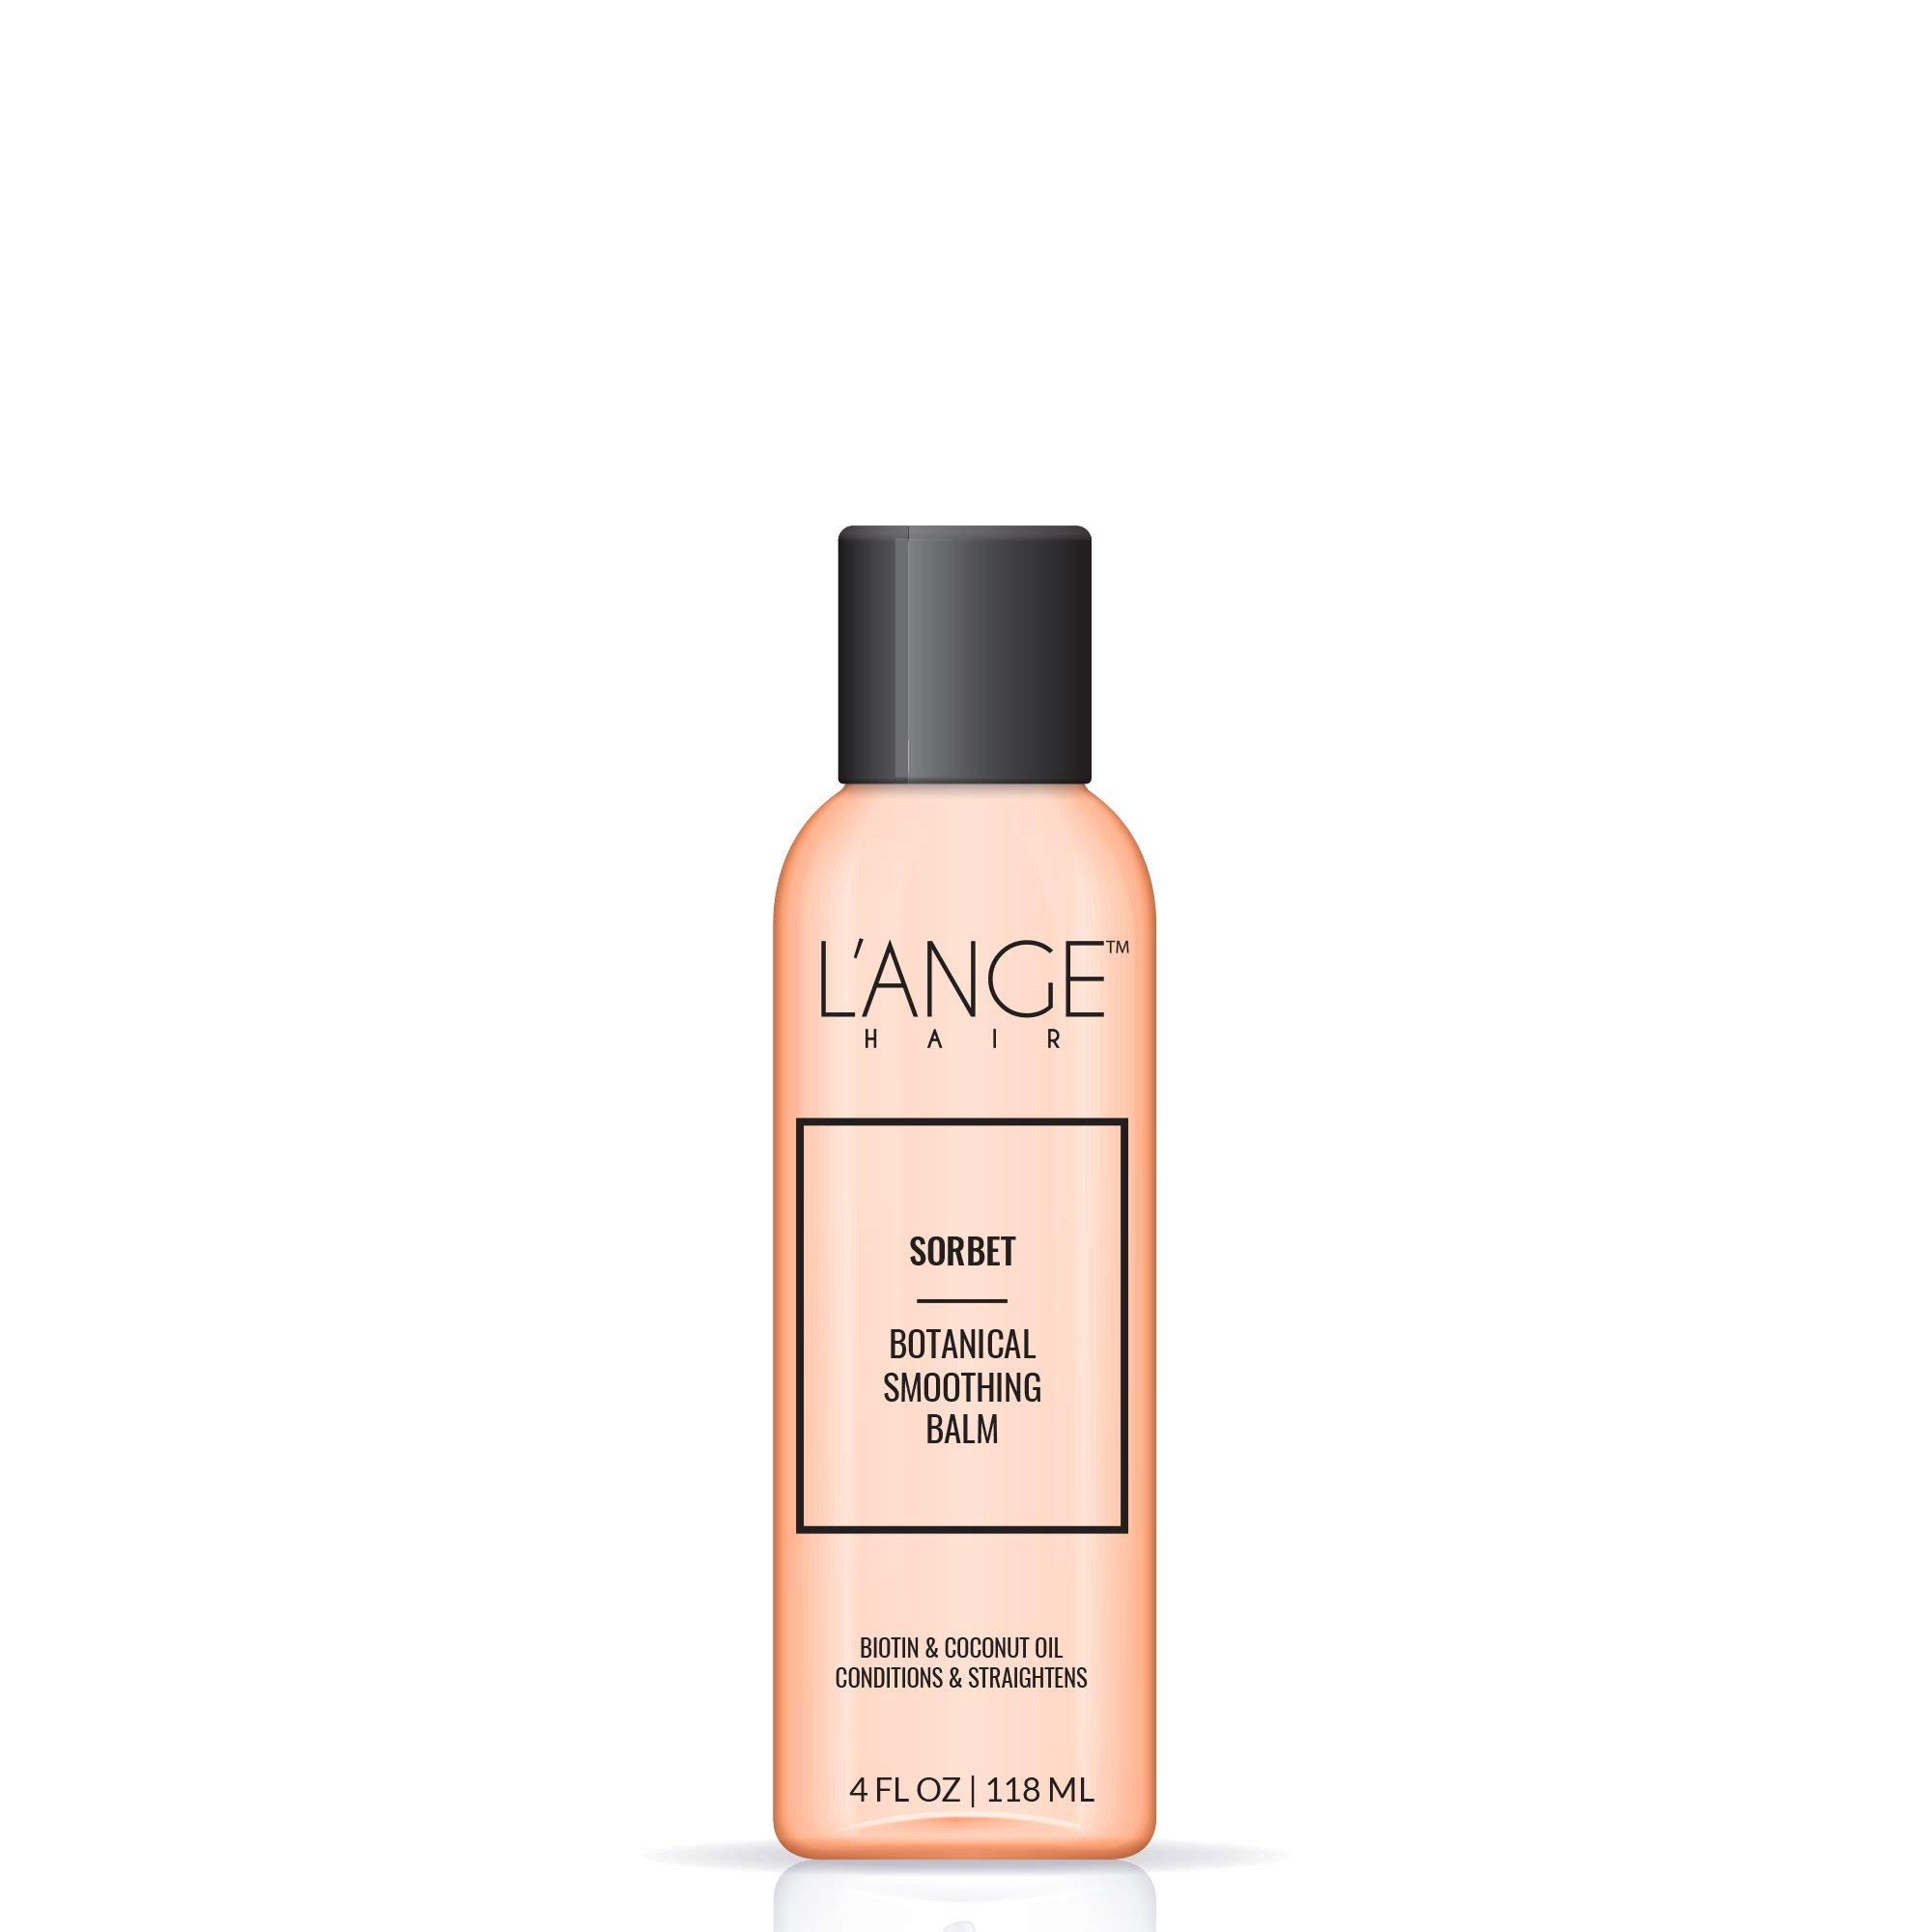 L'ANGE SORBET Botanical Smoothing Balm - Biotin & Coconut Oil - Paraben Free UV Protectant - Deep Conditioning Treatment - Natural Looking Hair Result - Salon Grade Hair Care, 4 FL Oz by L'ANGE HAIR